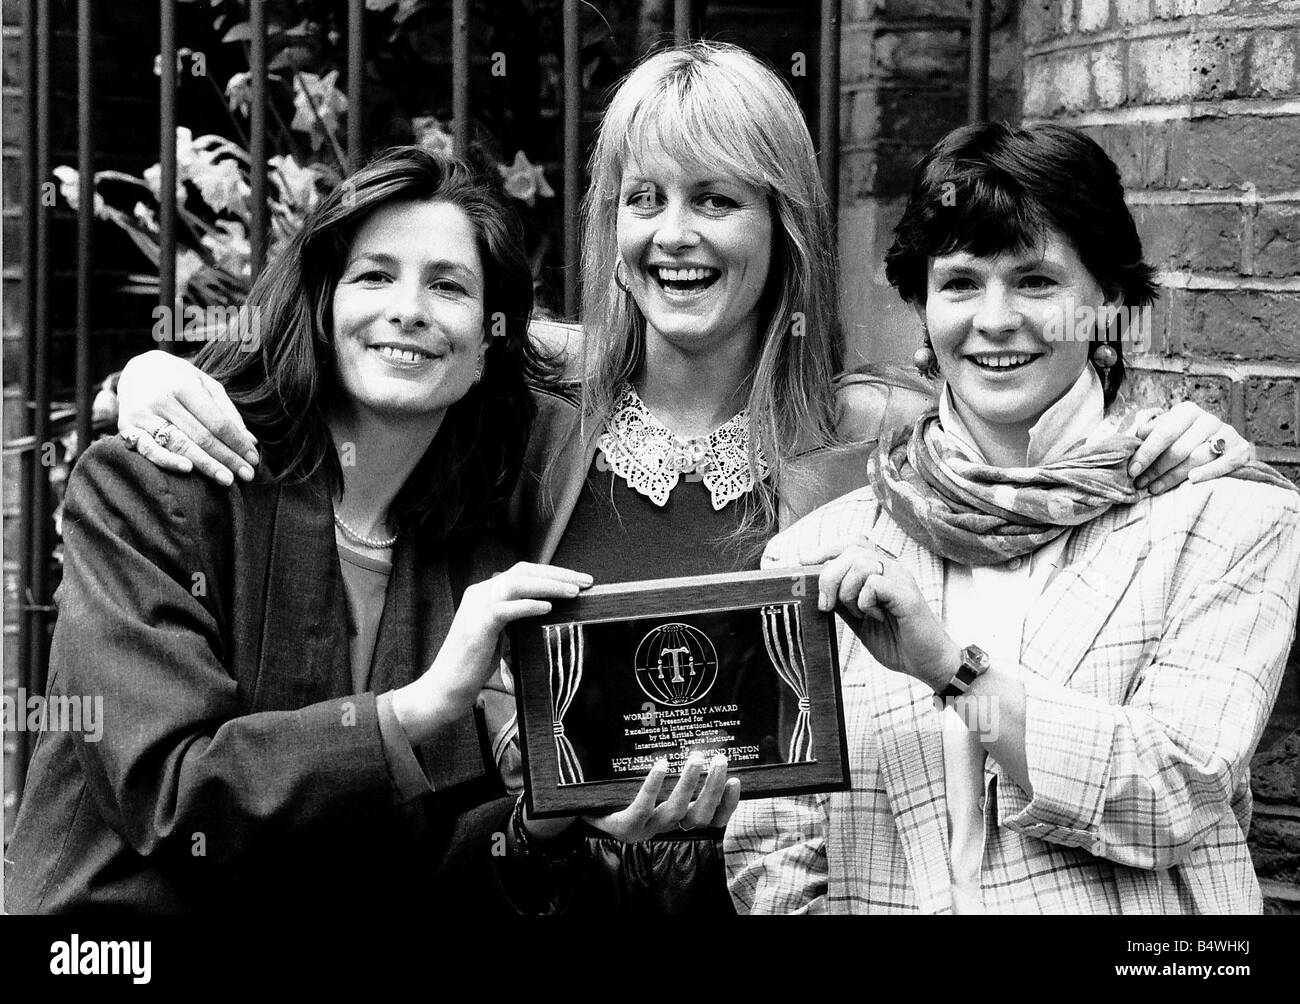 Twiggy Model Actress presenting award to London Theatres Directors Rose Fenton and Lucy NealStock Photo